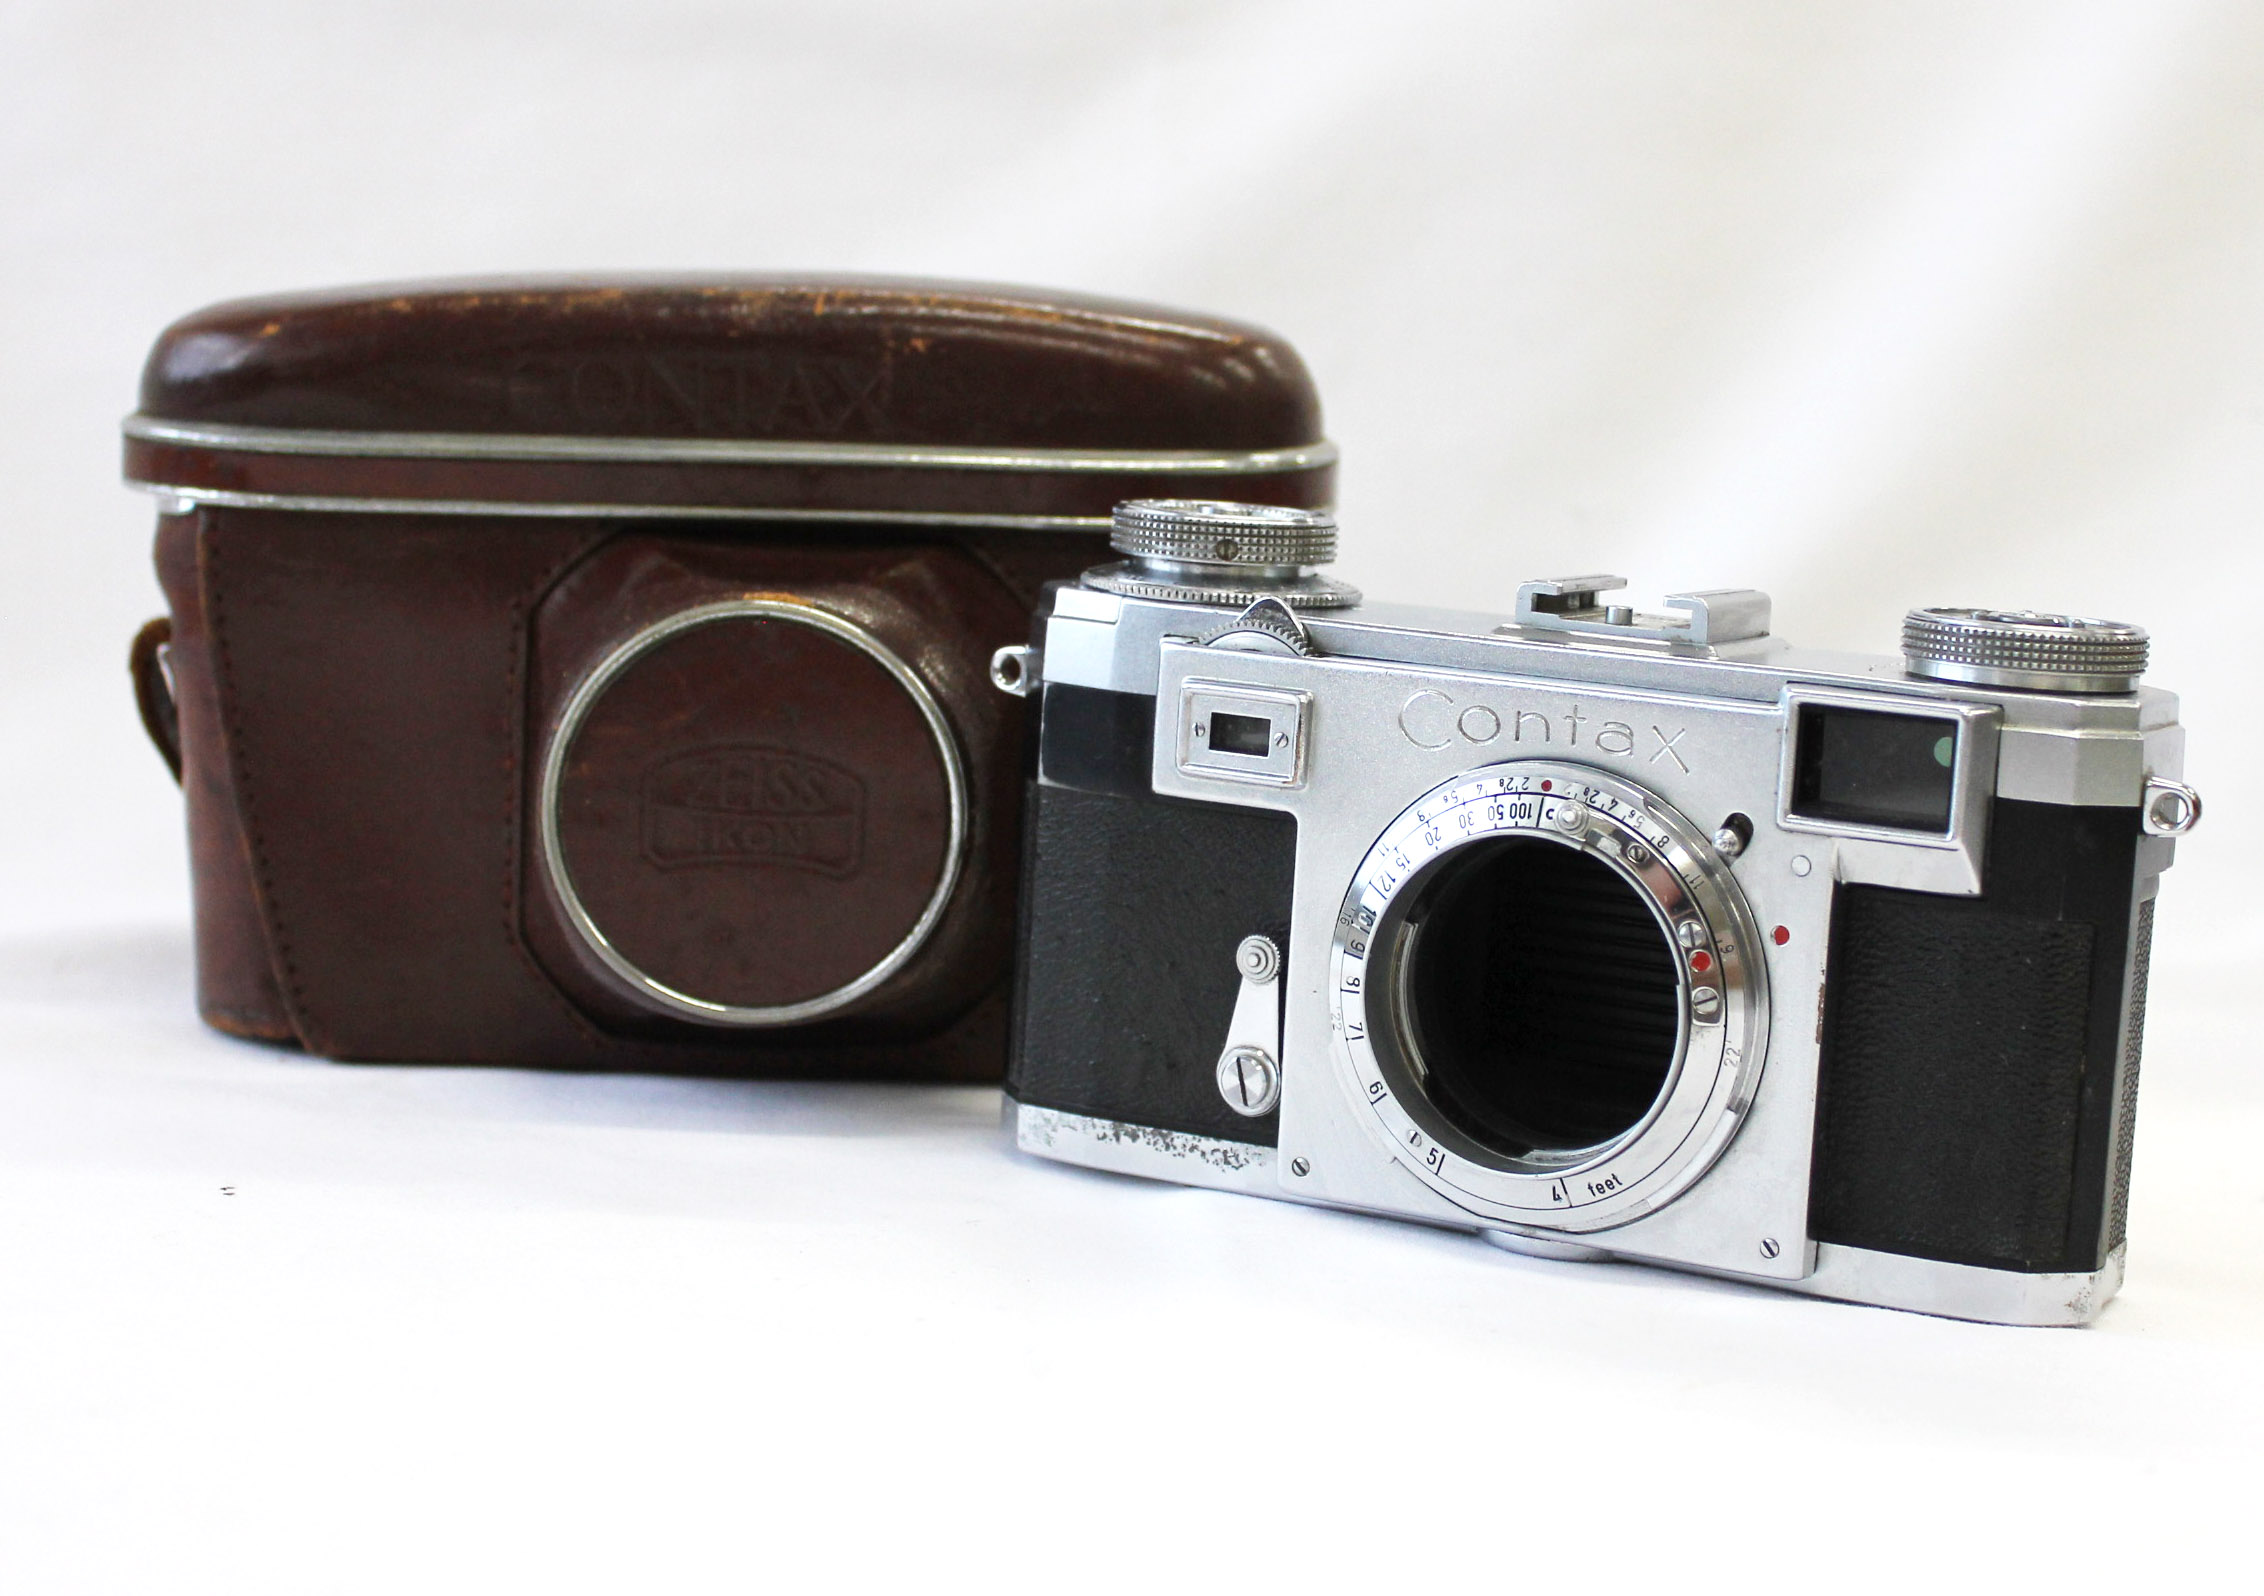 Japan Used Camera Shop | Zeiss Ikon Contax IIa 2a Color Dial Rangefinder 35mm Film Camera with Case from Japan